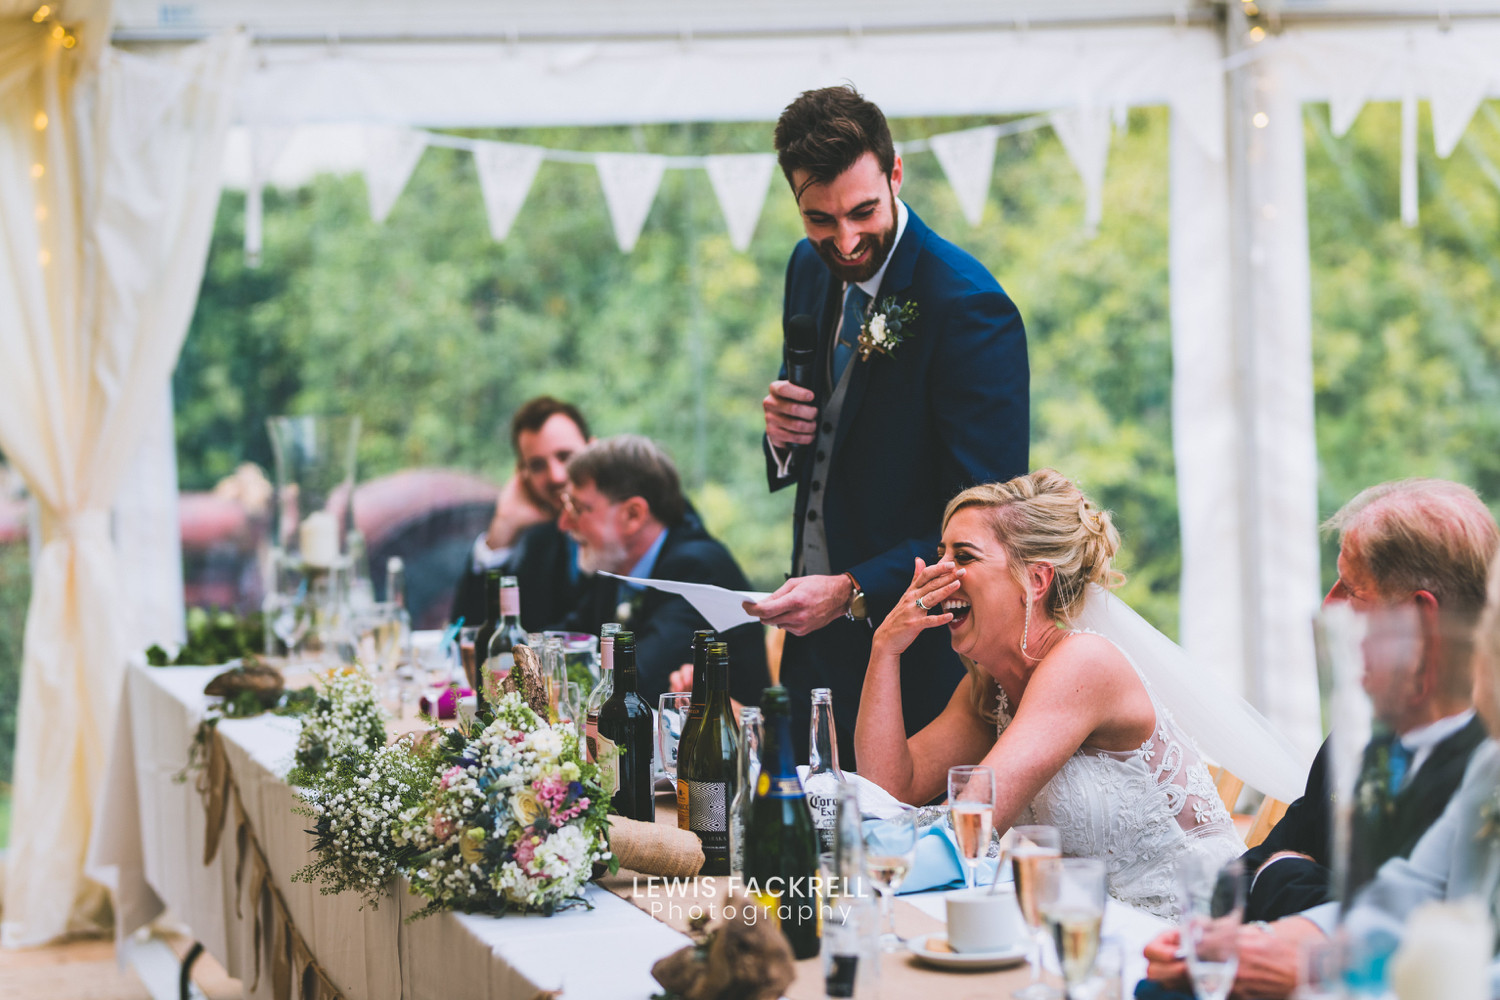 Marquee wedding reception, the top table, groom is standing giving a speach and bride is laughing